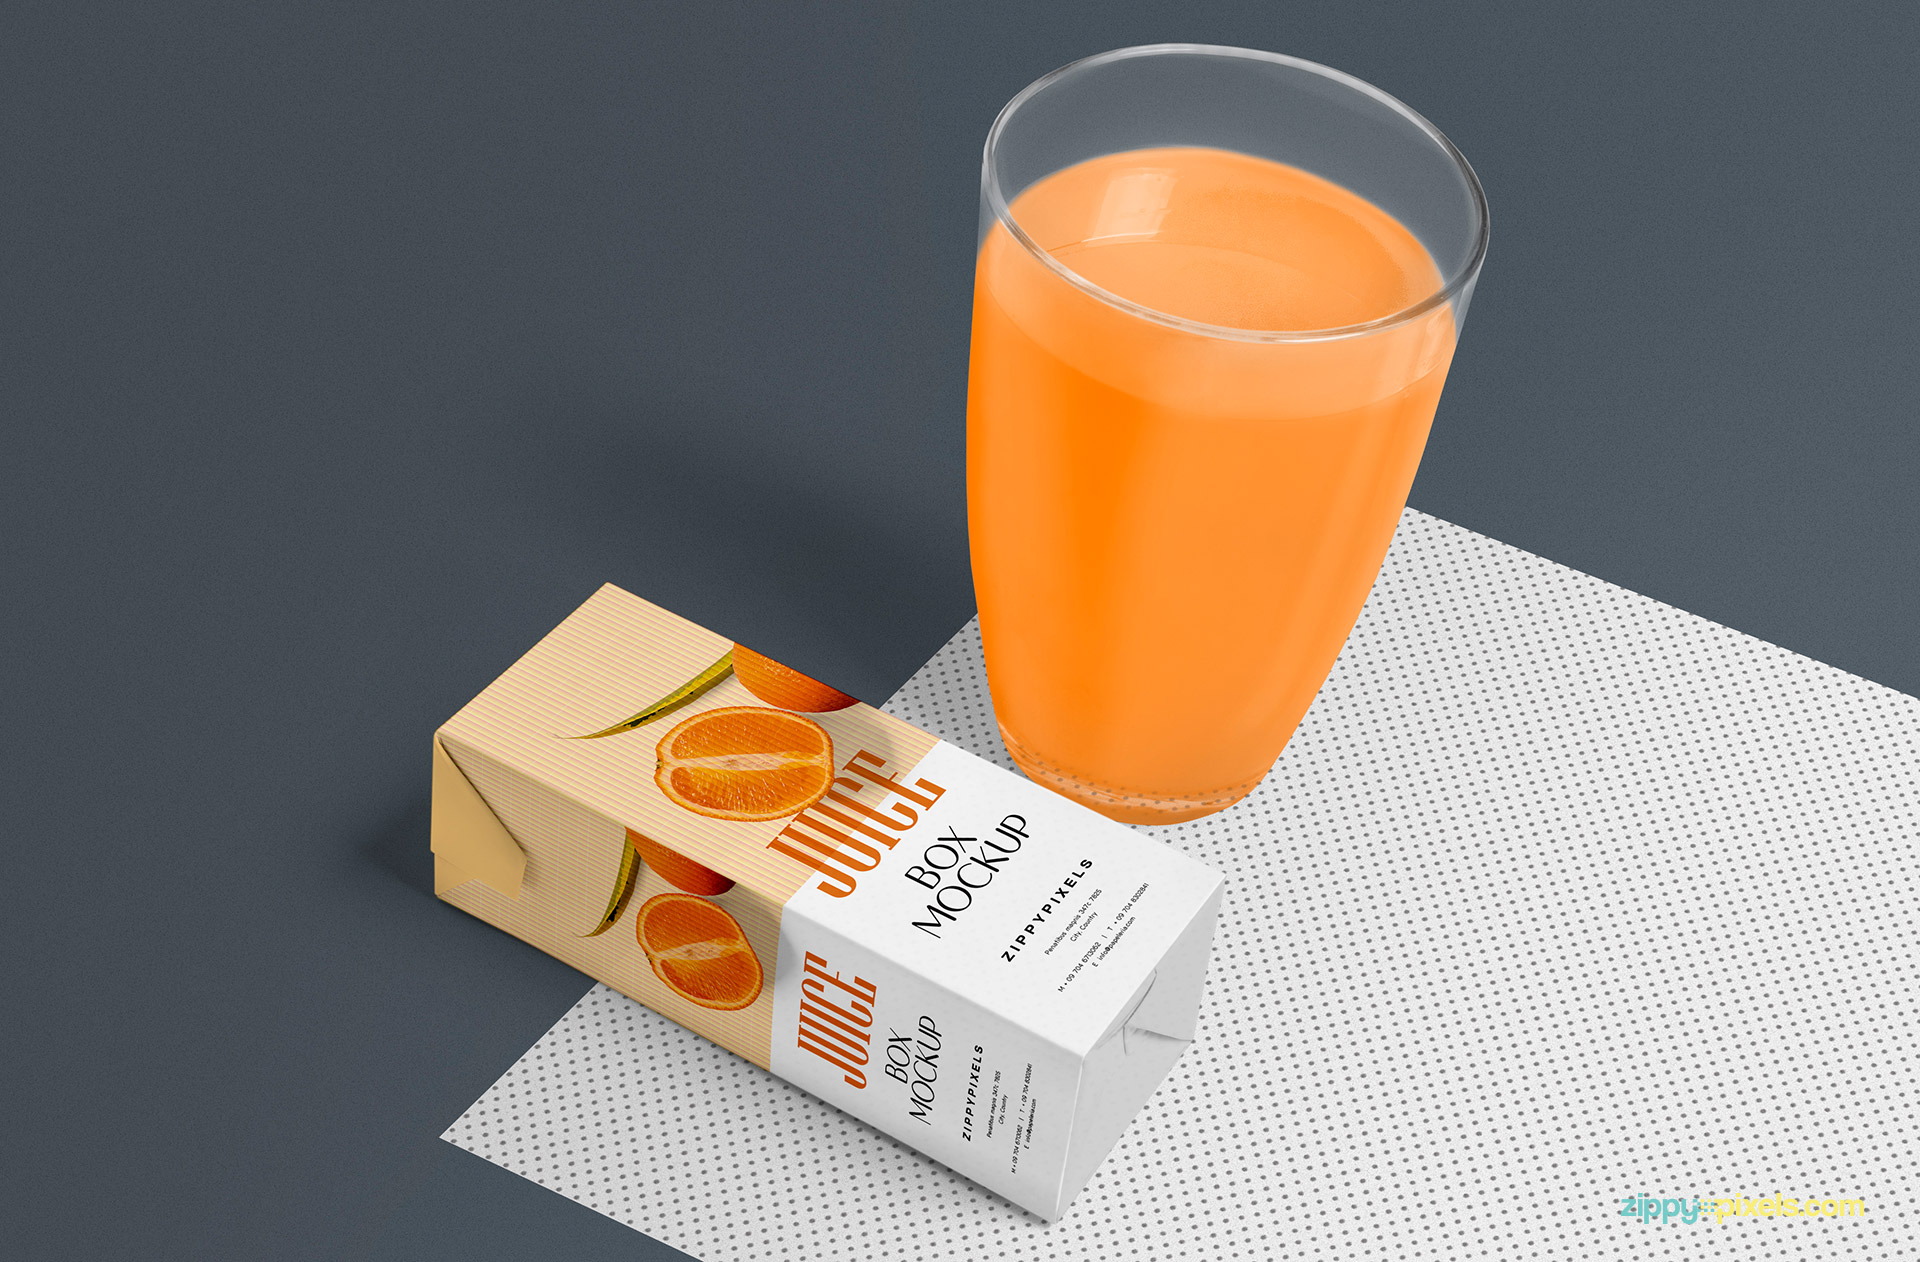 Customizable mat and background under the orange juice box and glass.